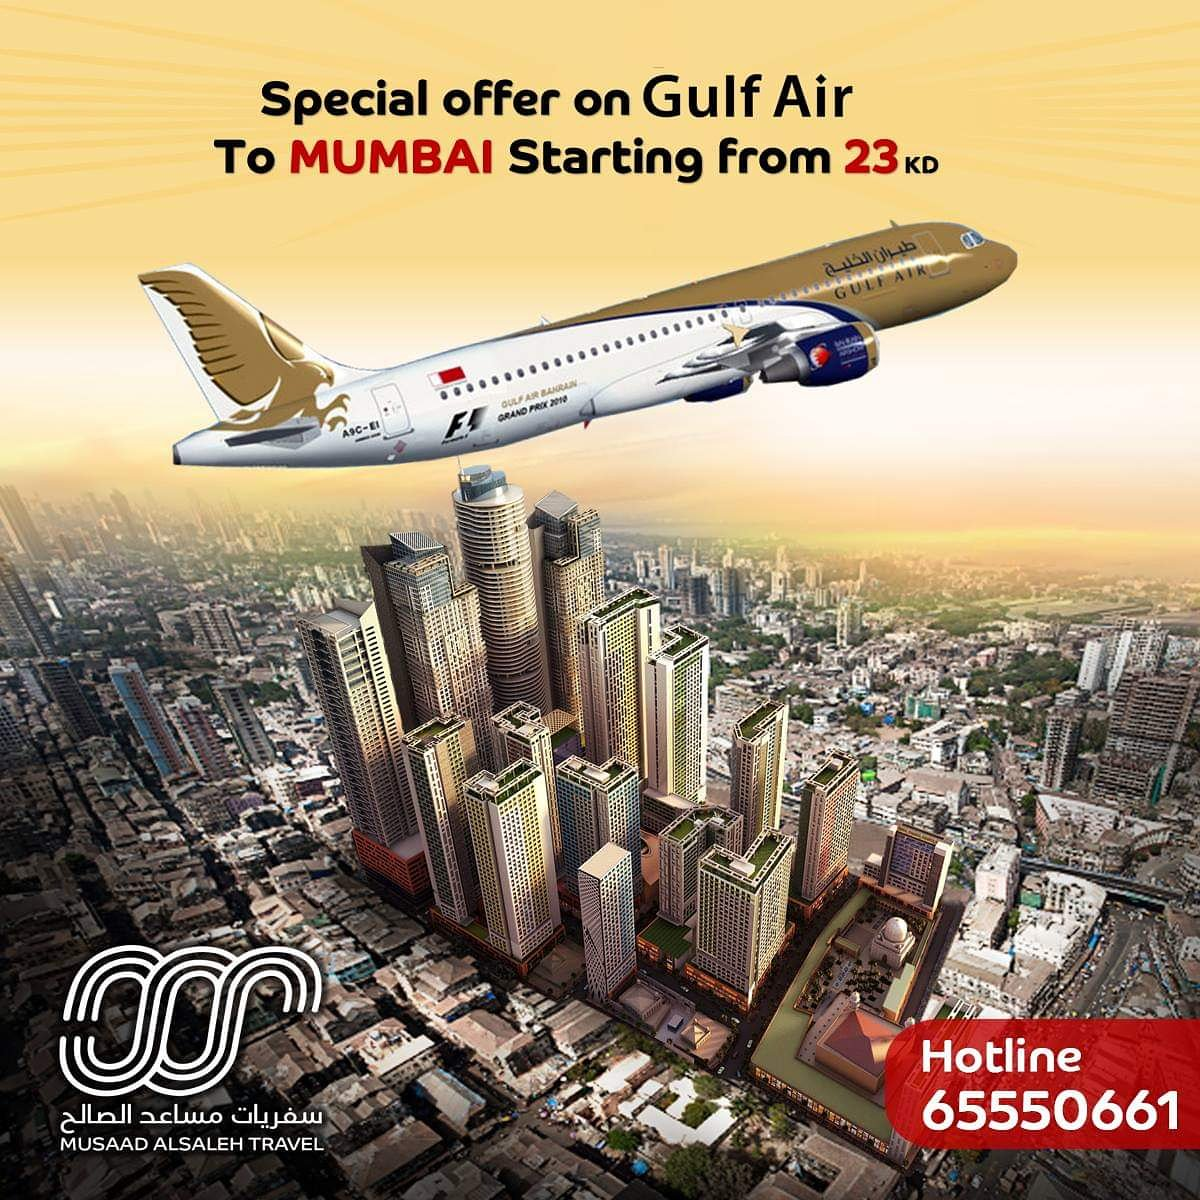 8e56d726789 ... Starting from 23 KWD Tax not included Terms and conditions may apply  Book now wherever you are with K NET and credit card and receive your  ticket with ...